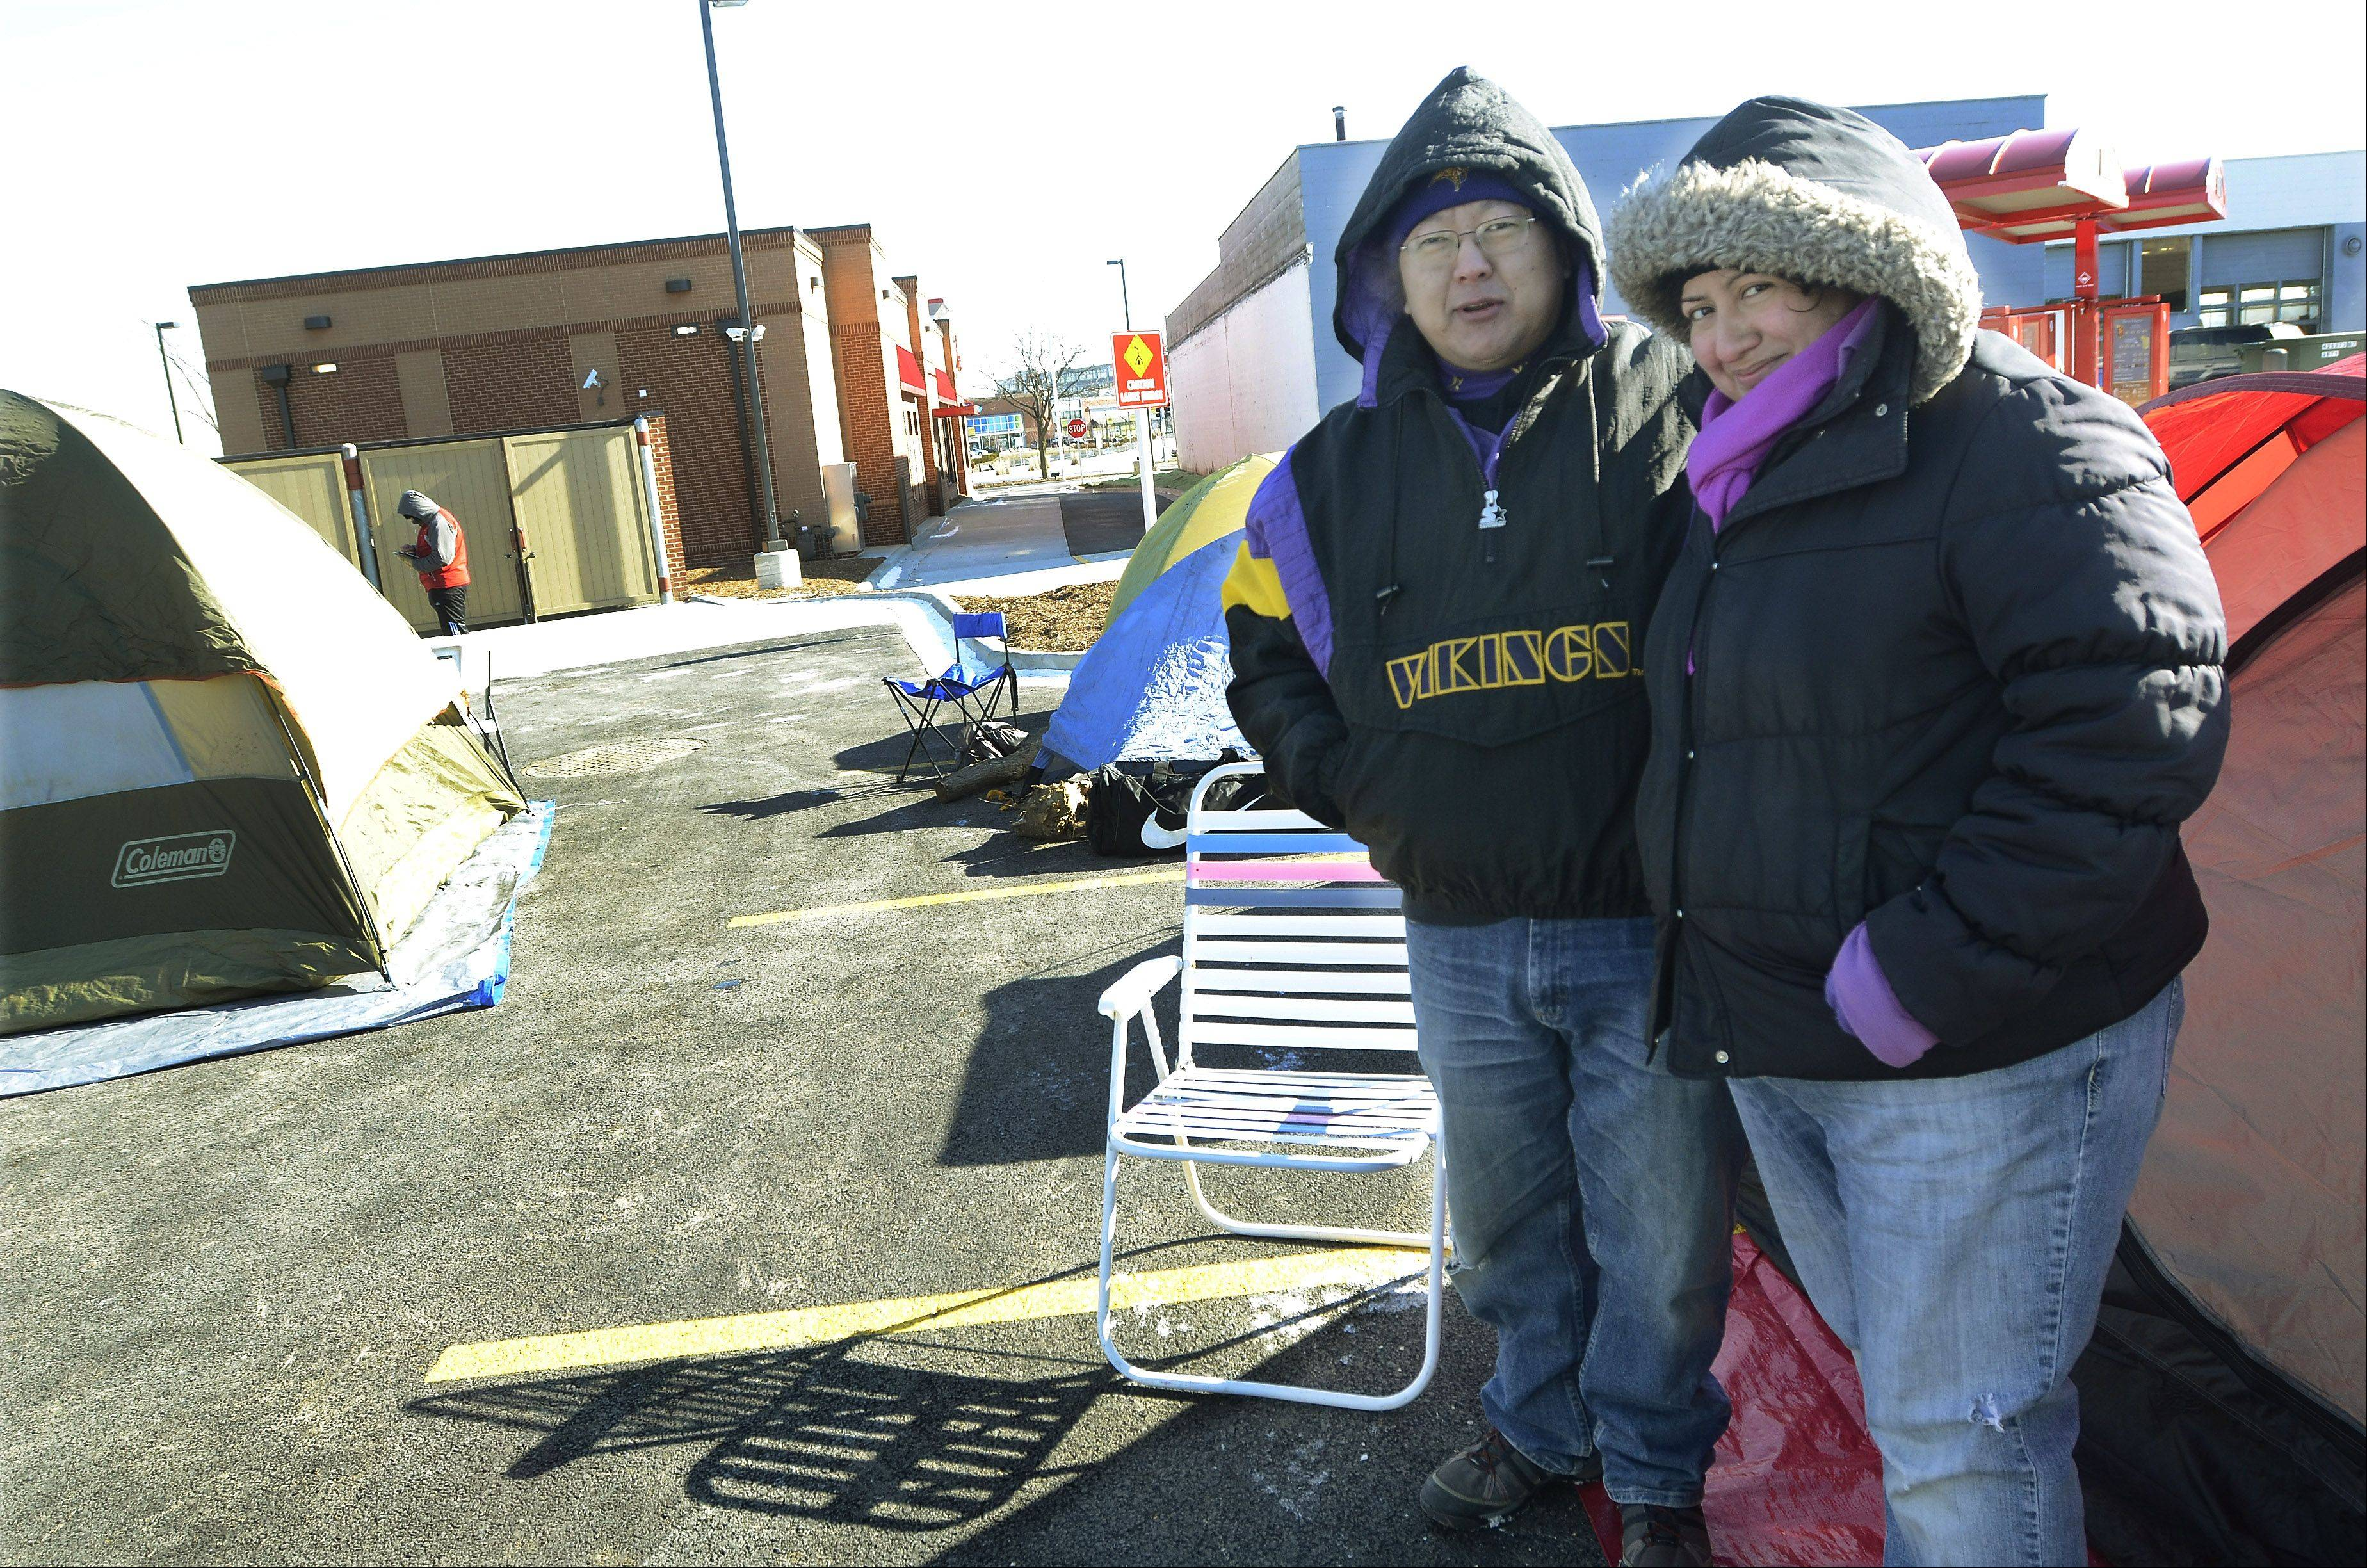 Nuno and Laura Schmidt of Mount Prospect camp out in the tent city at a new Mount Prospect Chick-fil-A.